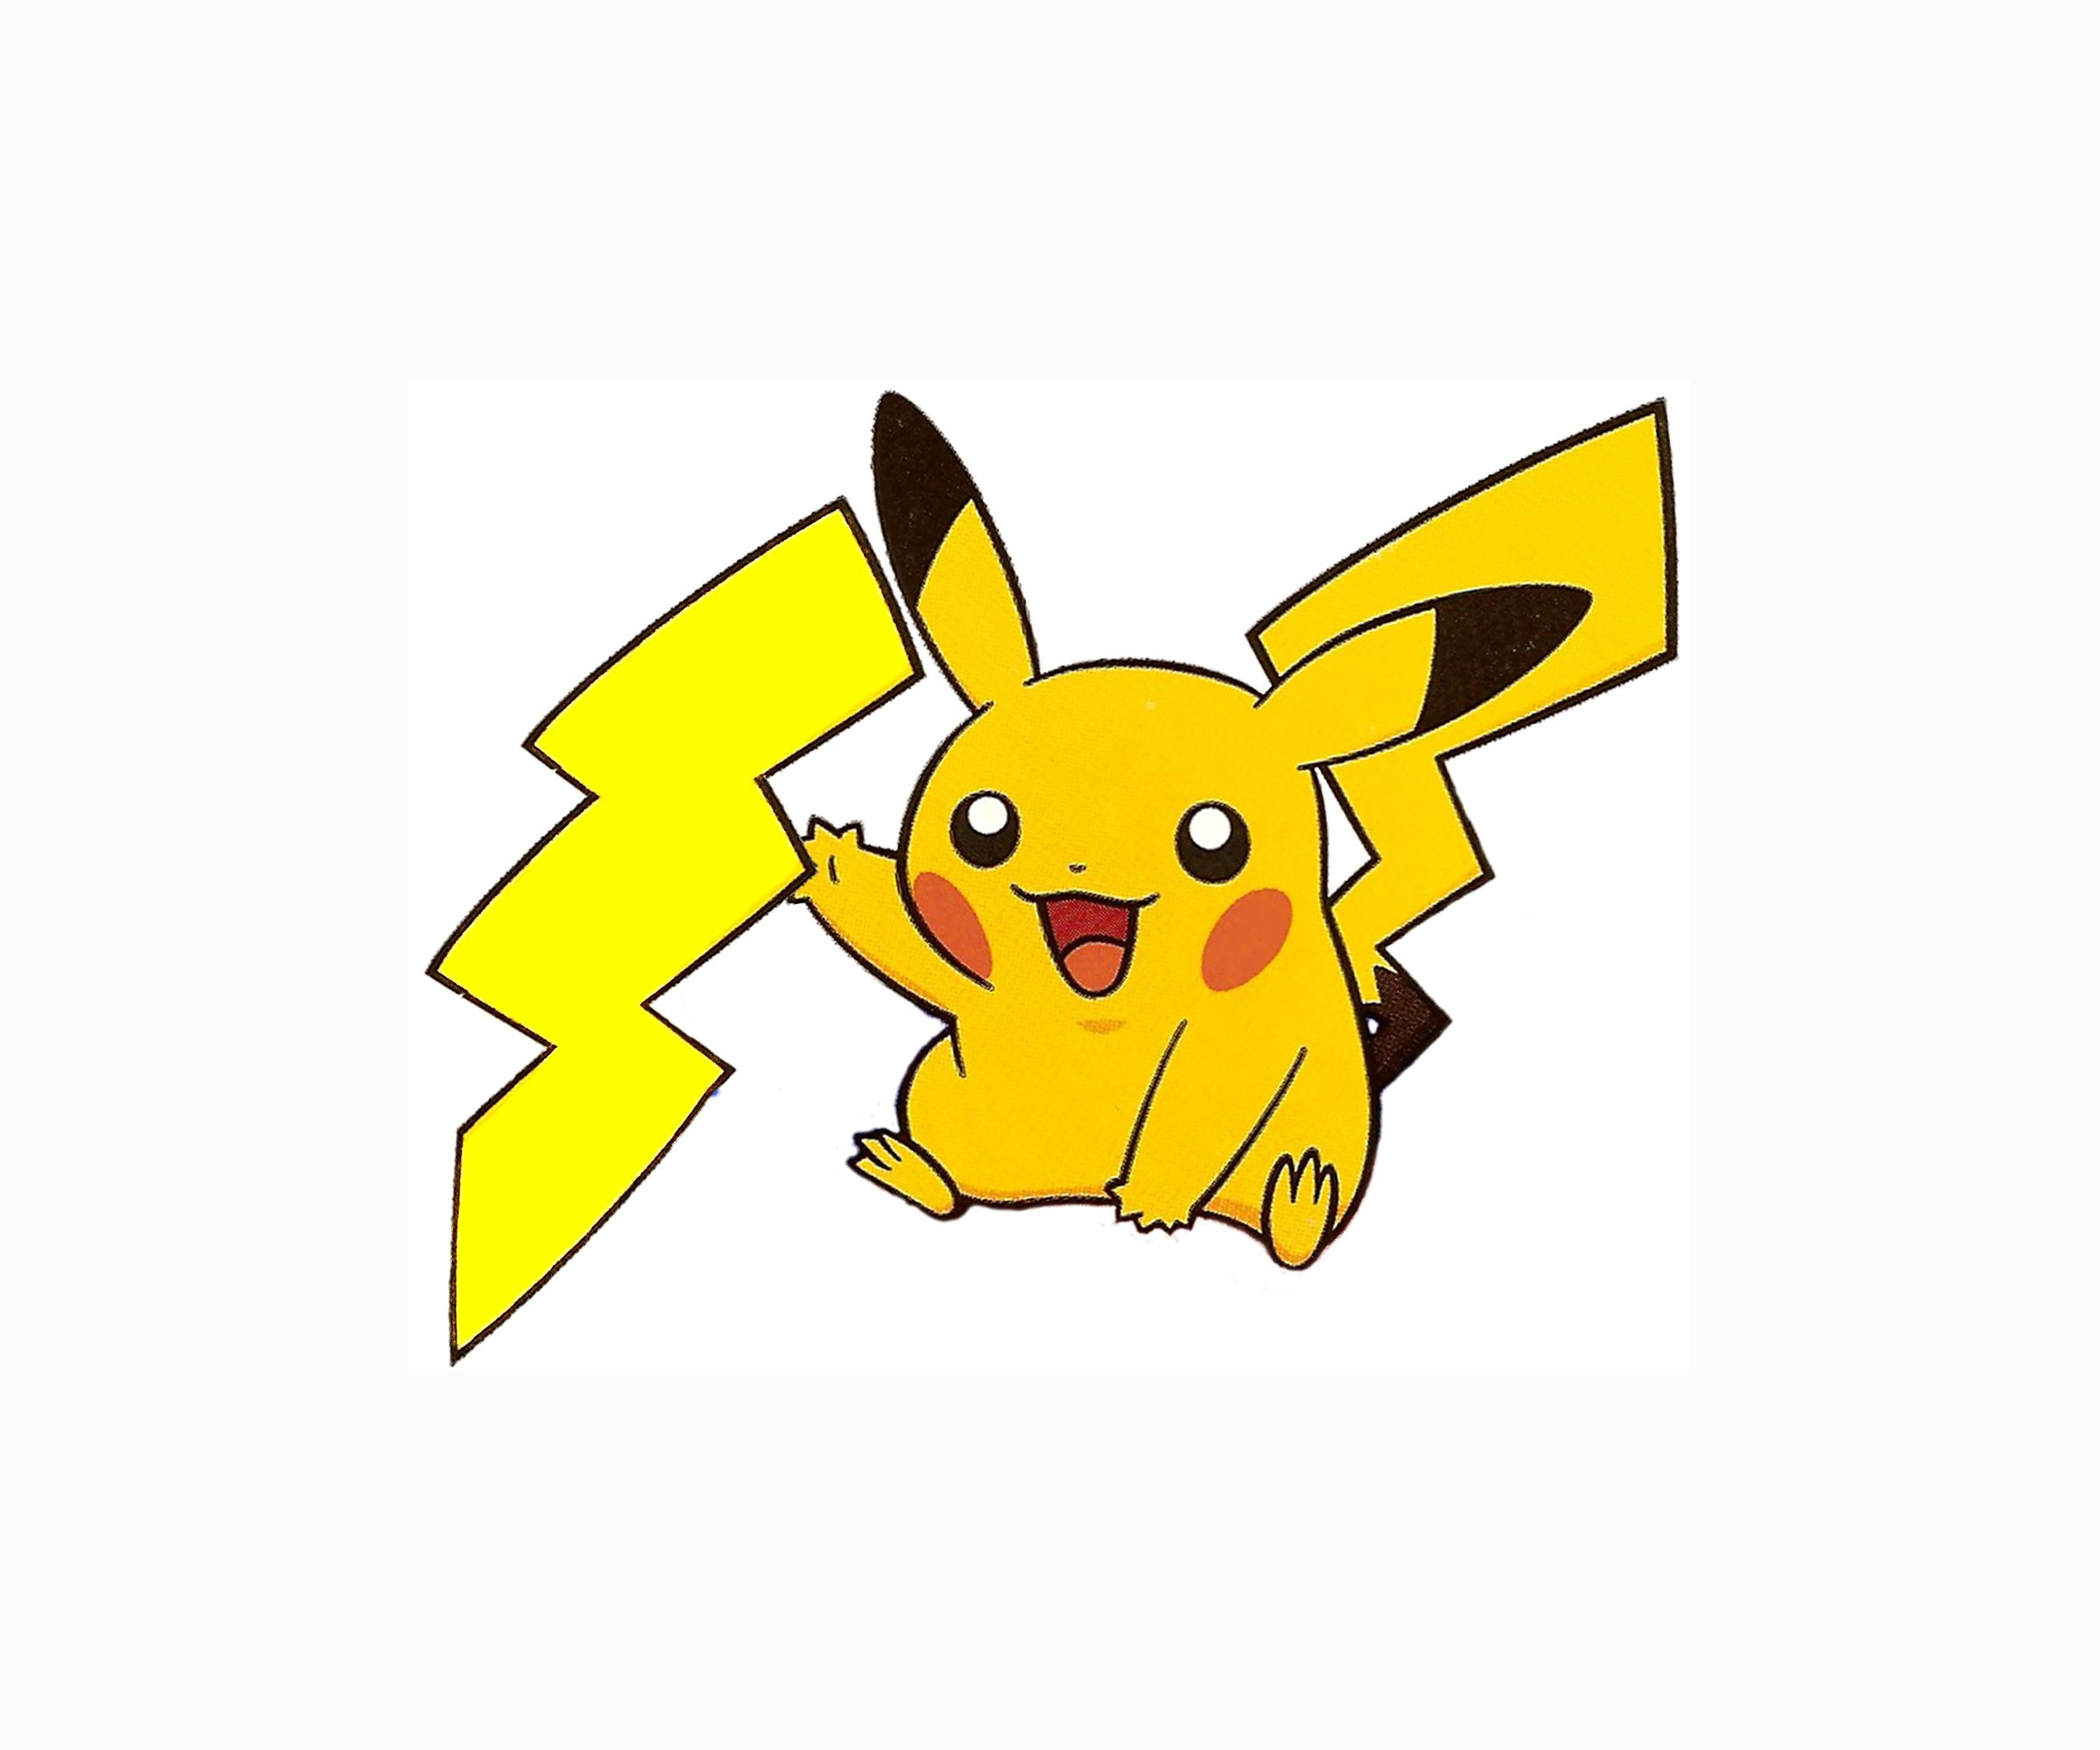 Pikachu clipart lightning. Pokemon bolt wallpaper x